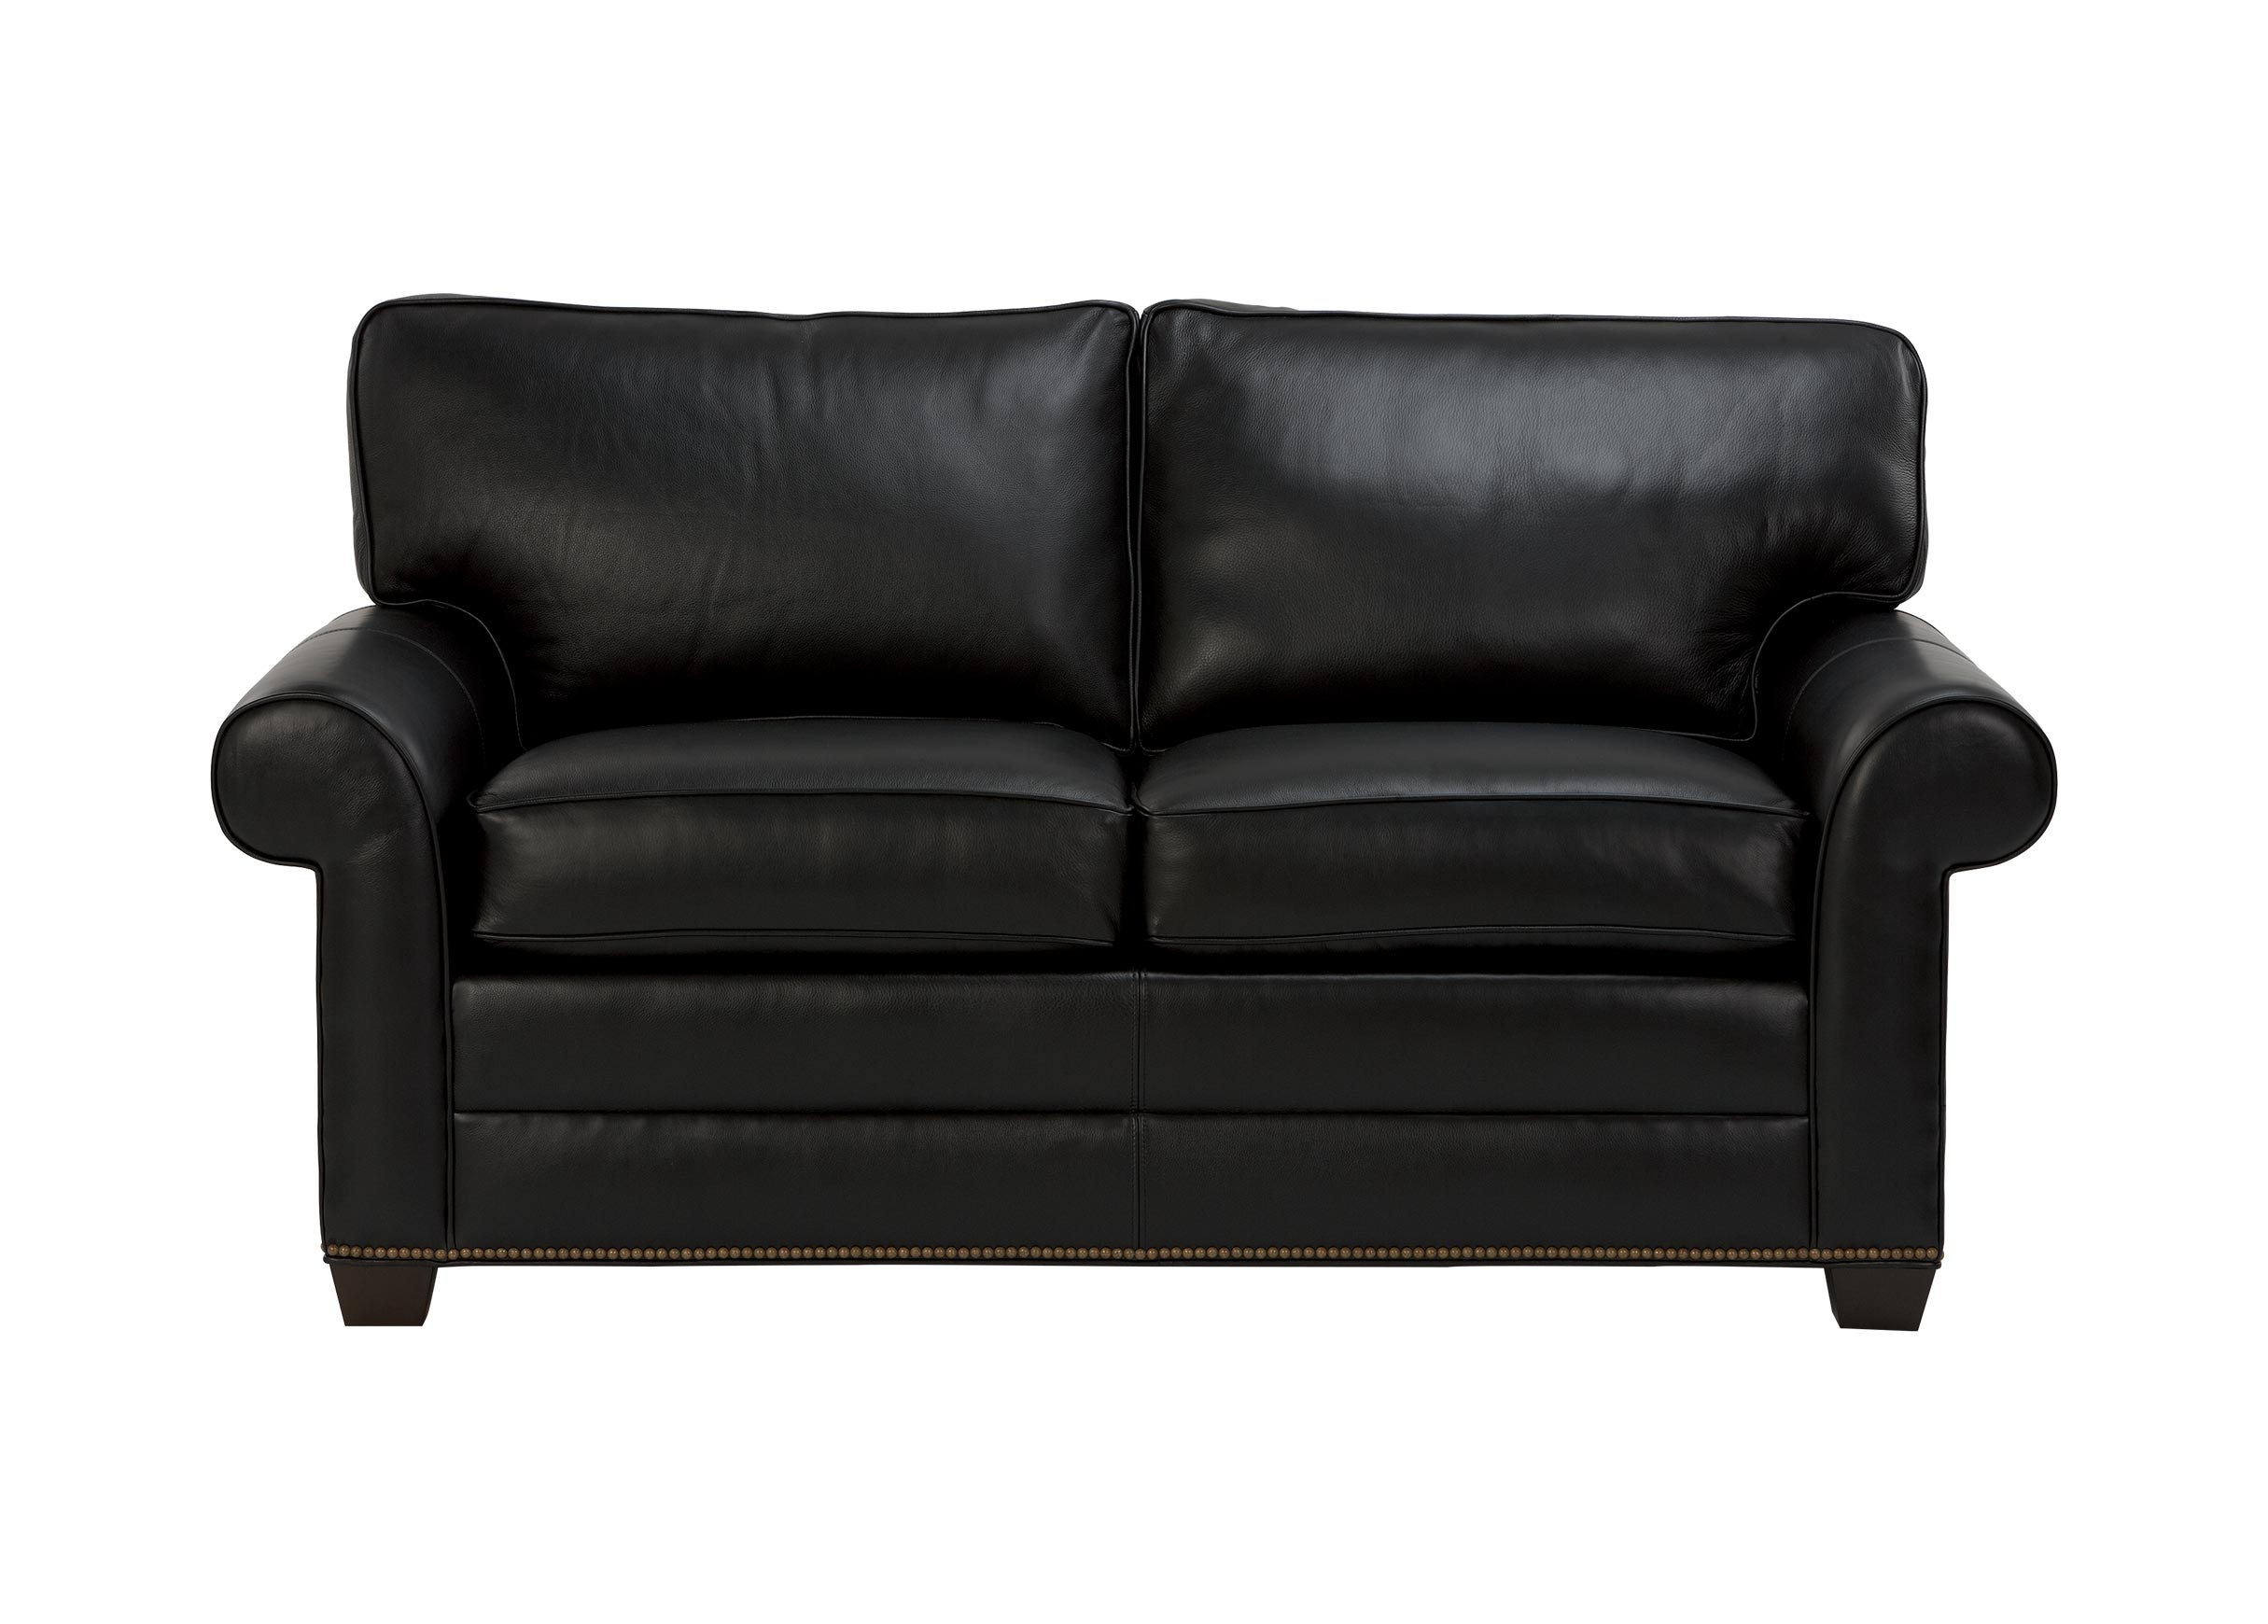 roll arm sofa canada recycling loughborough bennett leather sofas and loveseats ethan